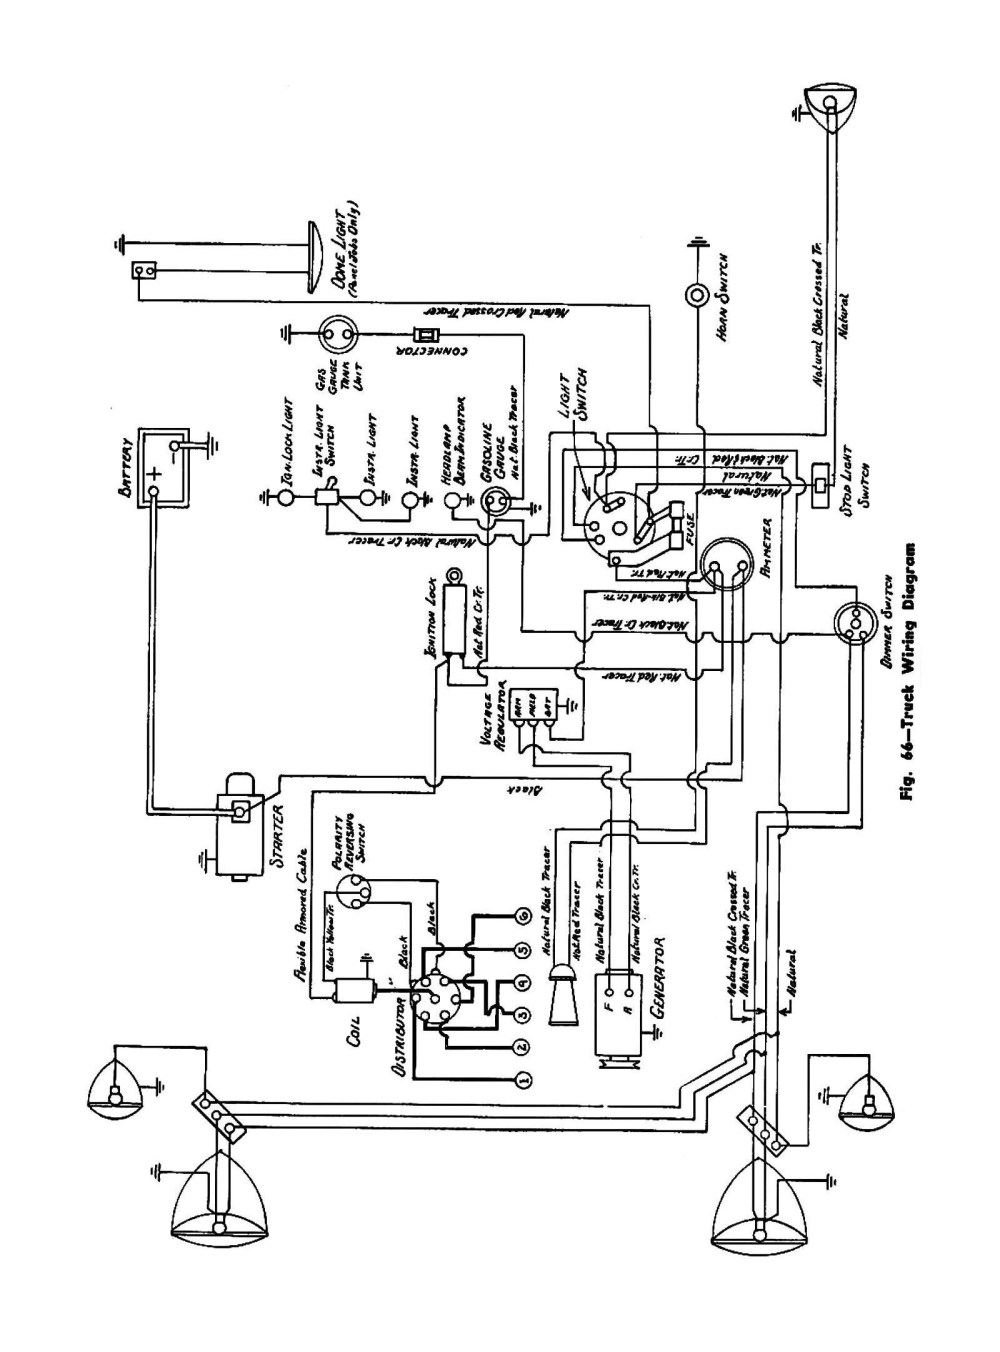 medium resolution of wiringdiagramrs485wiringdiagramrs485wiringdiagramdb9918x1010 old phone box wiring diagram free download wiring diagram schematic